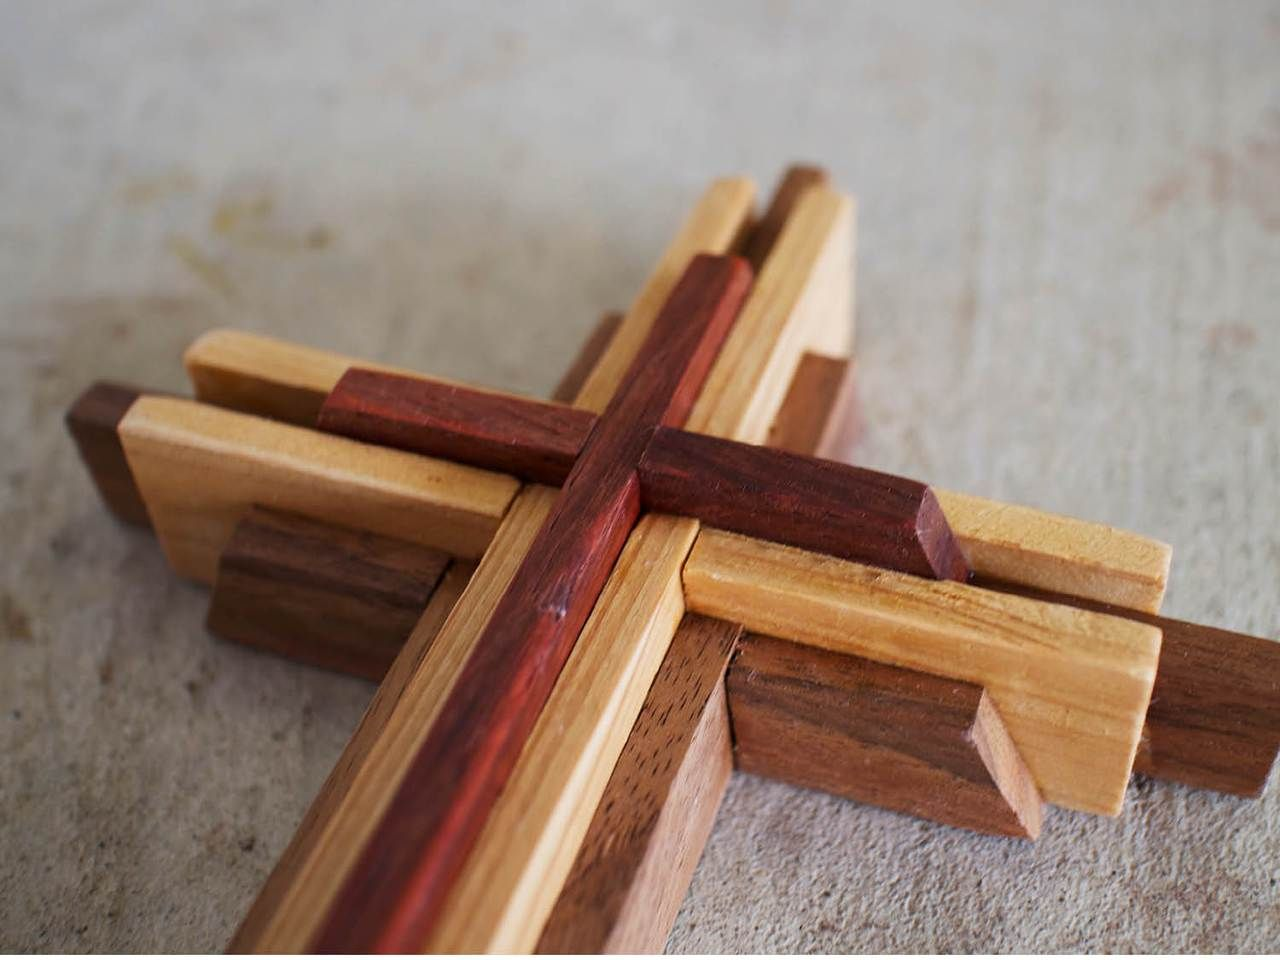 Diy 9 Inch Wood Cross Plans In 2019 Woodworking Hints And Wood Projects Wood Projects Wood